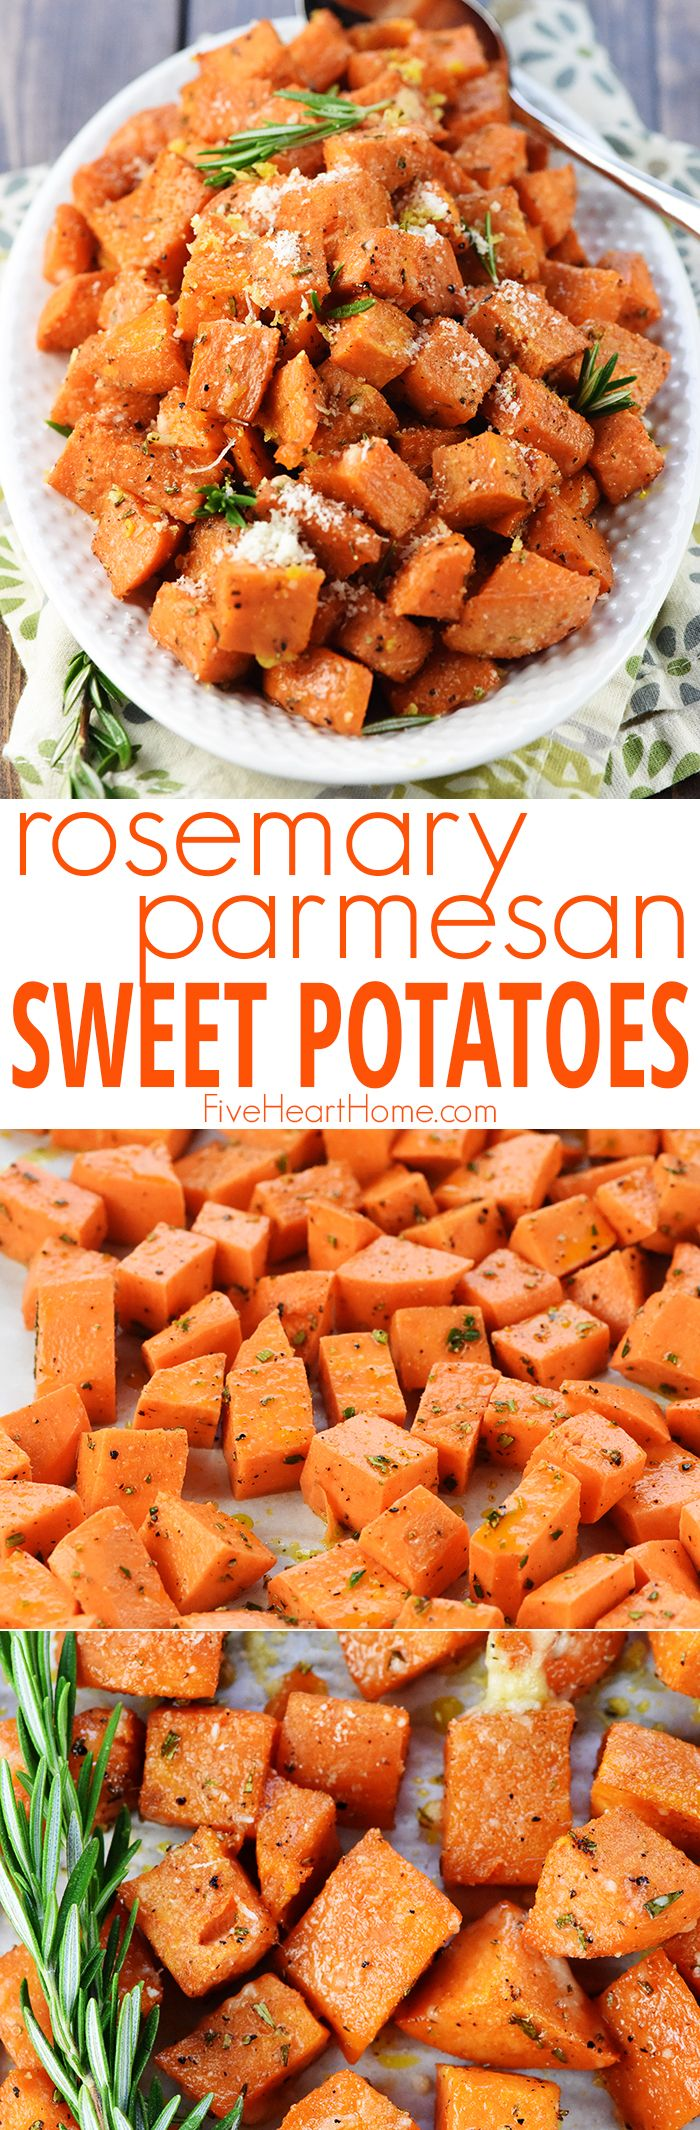 Rosemary Parmesan Roasted Sweet Potatoes ~ a simple, healthy, savory-sweet recipe that's the perfect side dish for a regular weeknight dinner or a special holiday menu! | FiveHeartHome.com via @fivehearthome